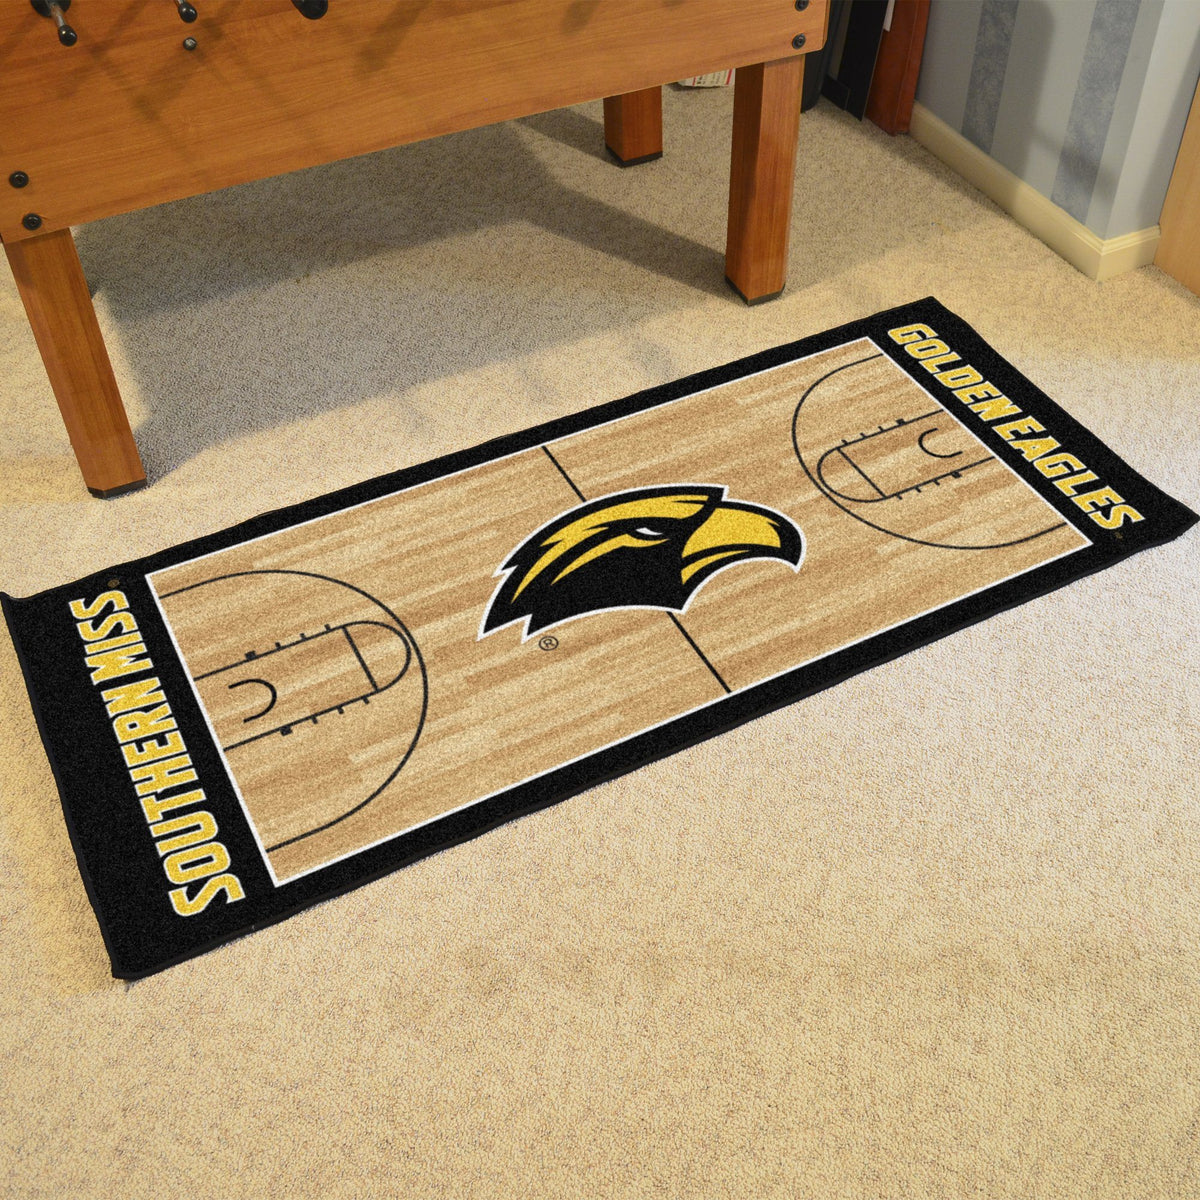 Collegiate - NCAA Basketball Runner Collegiate Mats, Rectangular Mats, NCAA Basketball Runner, Collegiate, Home Fan Mats Southern Miss